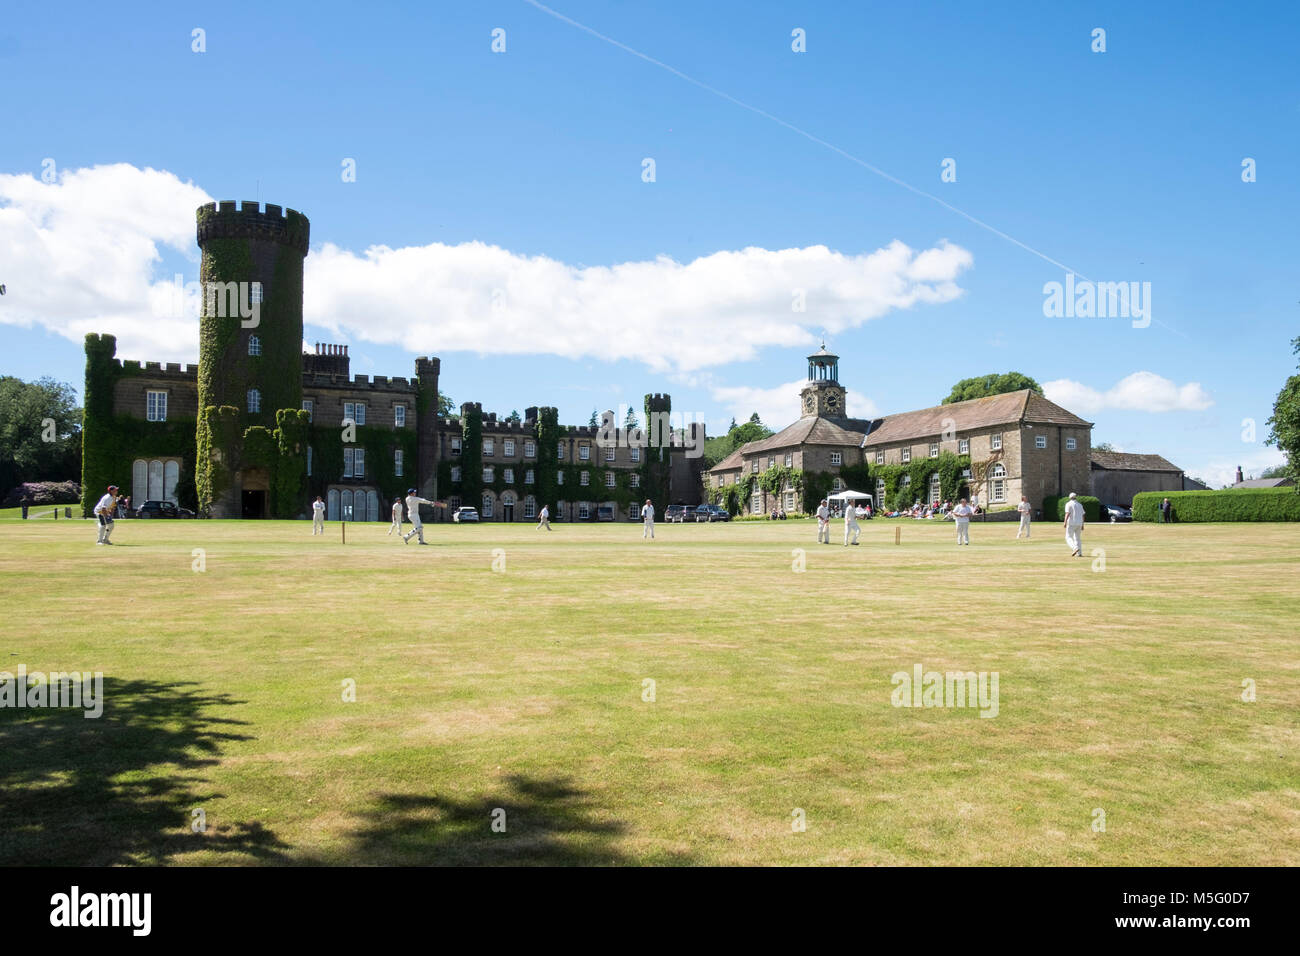 Cricket match in front of Swinton Park in Yorkshire - Stock Image